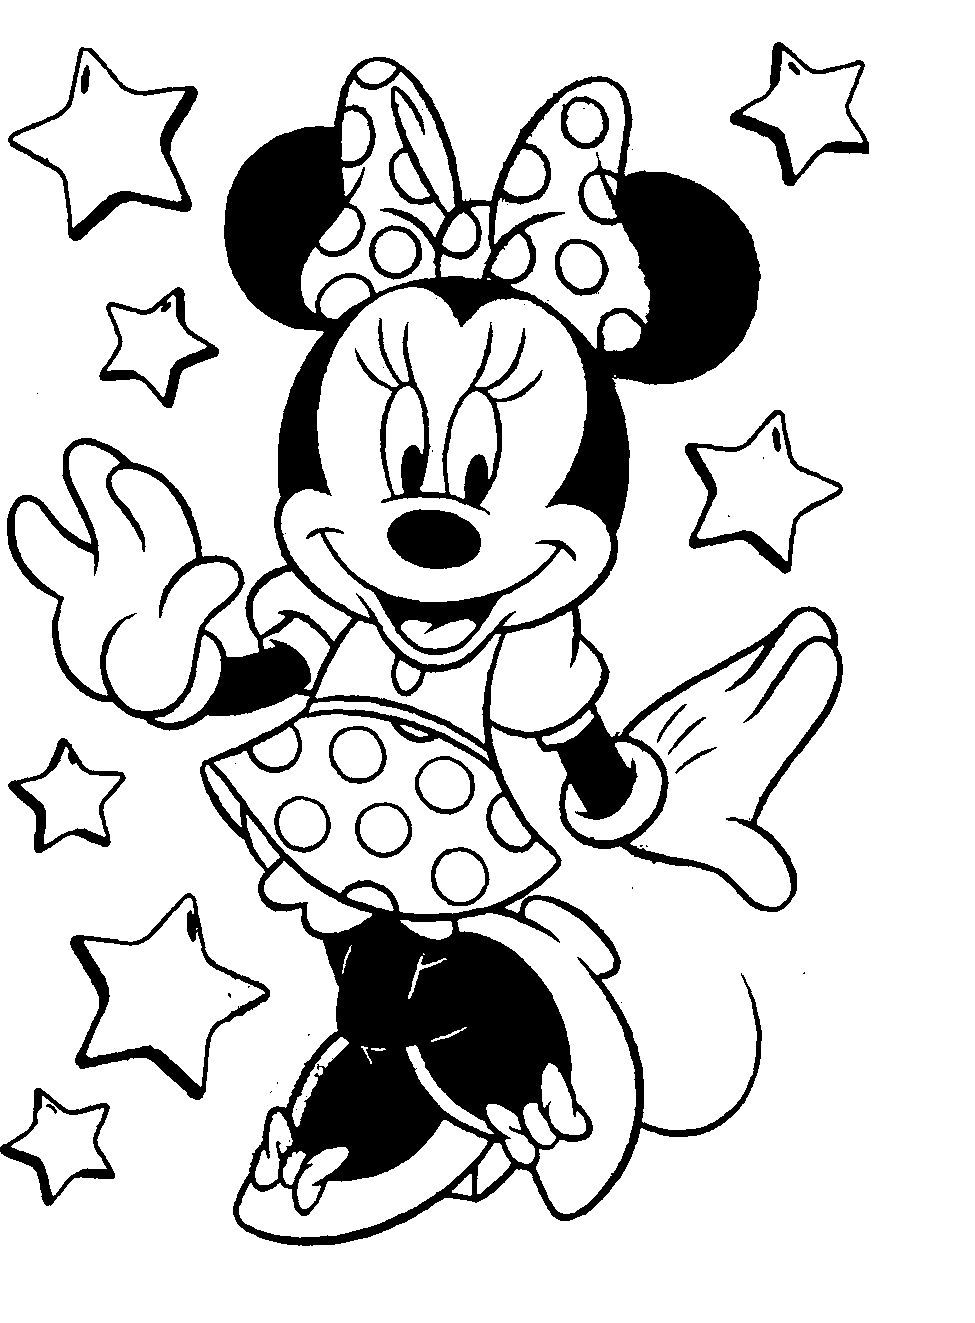 Minnie Coloring Pages Printables Http Www Wallpaperartdesignhd Us Minnie Color Mickey Mouse Coloring Pages Minnie Mouse Coloring Pages Cartoon Coloring Pages